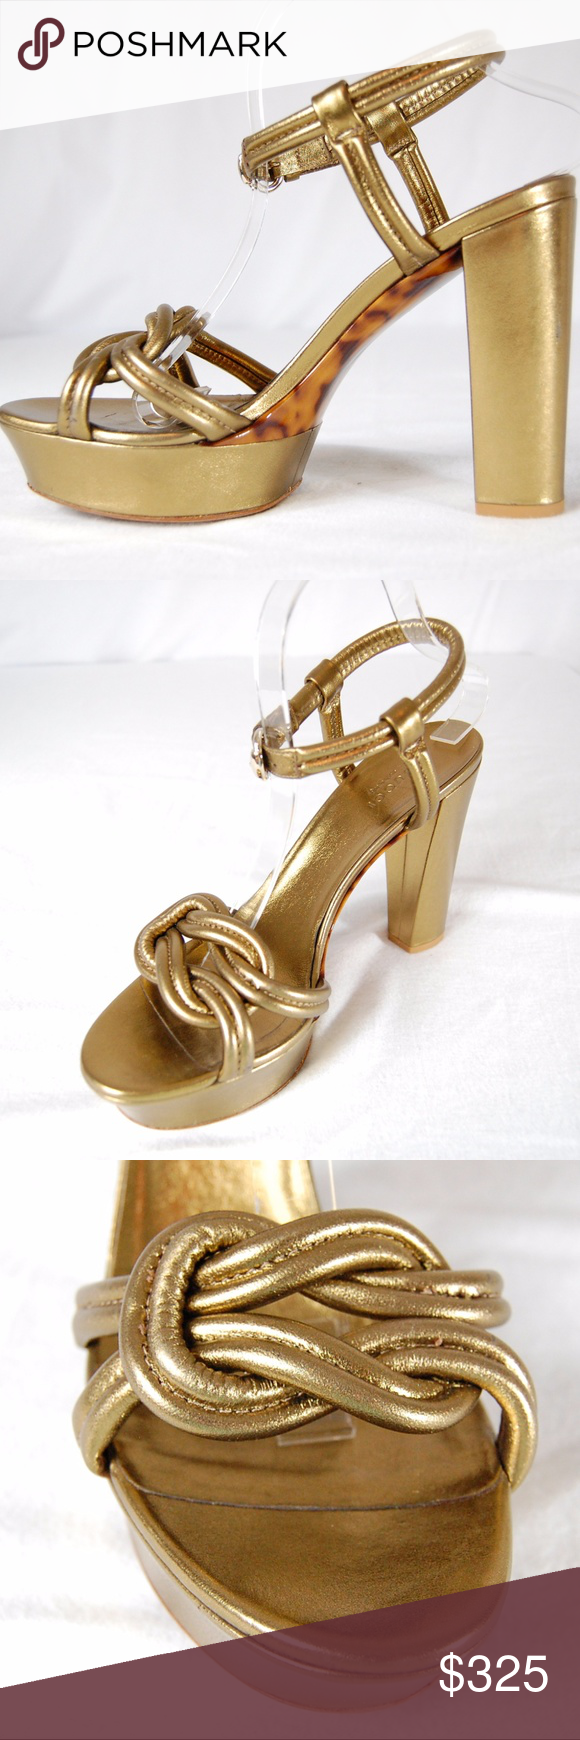 c7c7d71f4093 Gucci Metallic Gold Knotted  Orchid  Heels Stunning metallic gold  Orchid   twisted knot platform sandals with a chunky heel